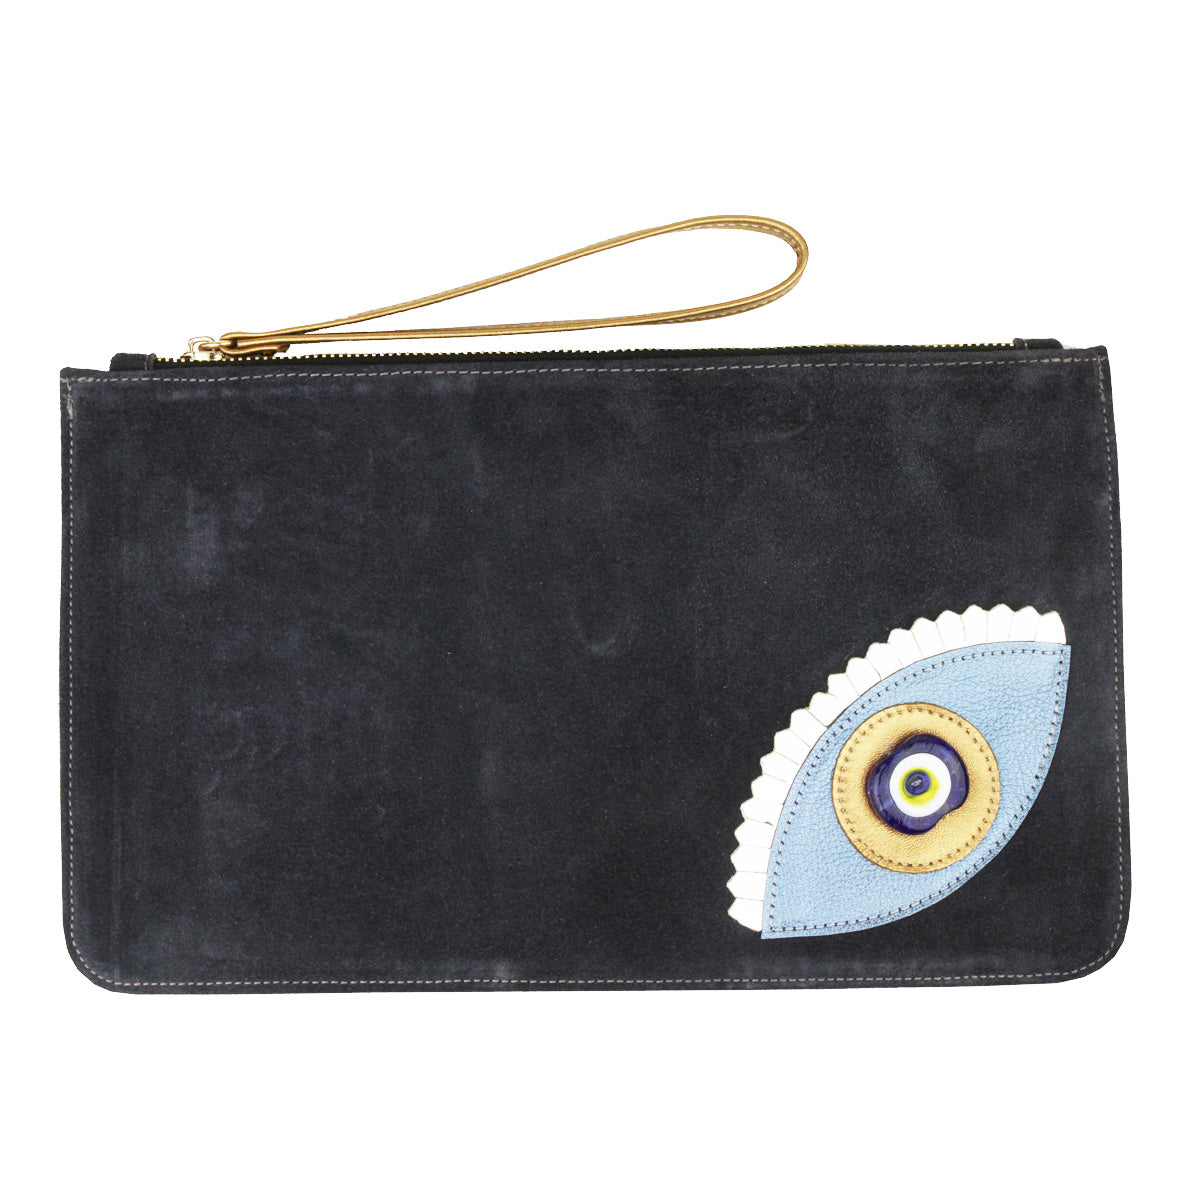 Evil Eye Dark Grey Suede Clutch